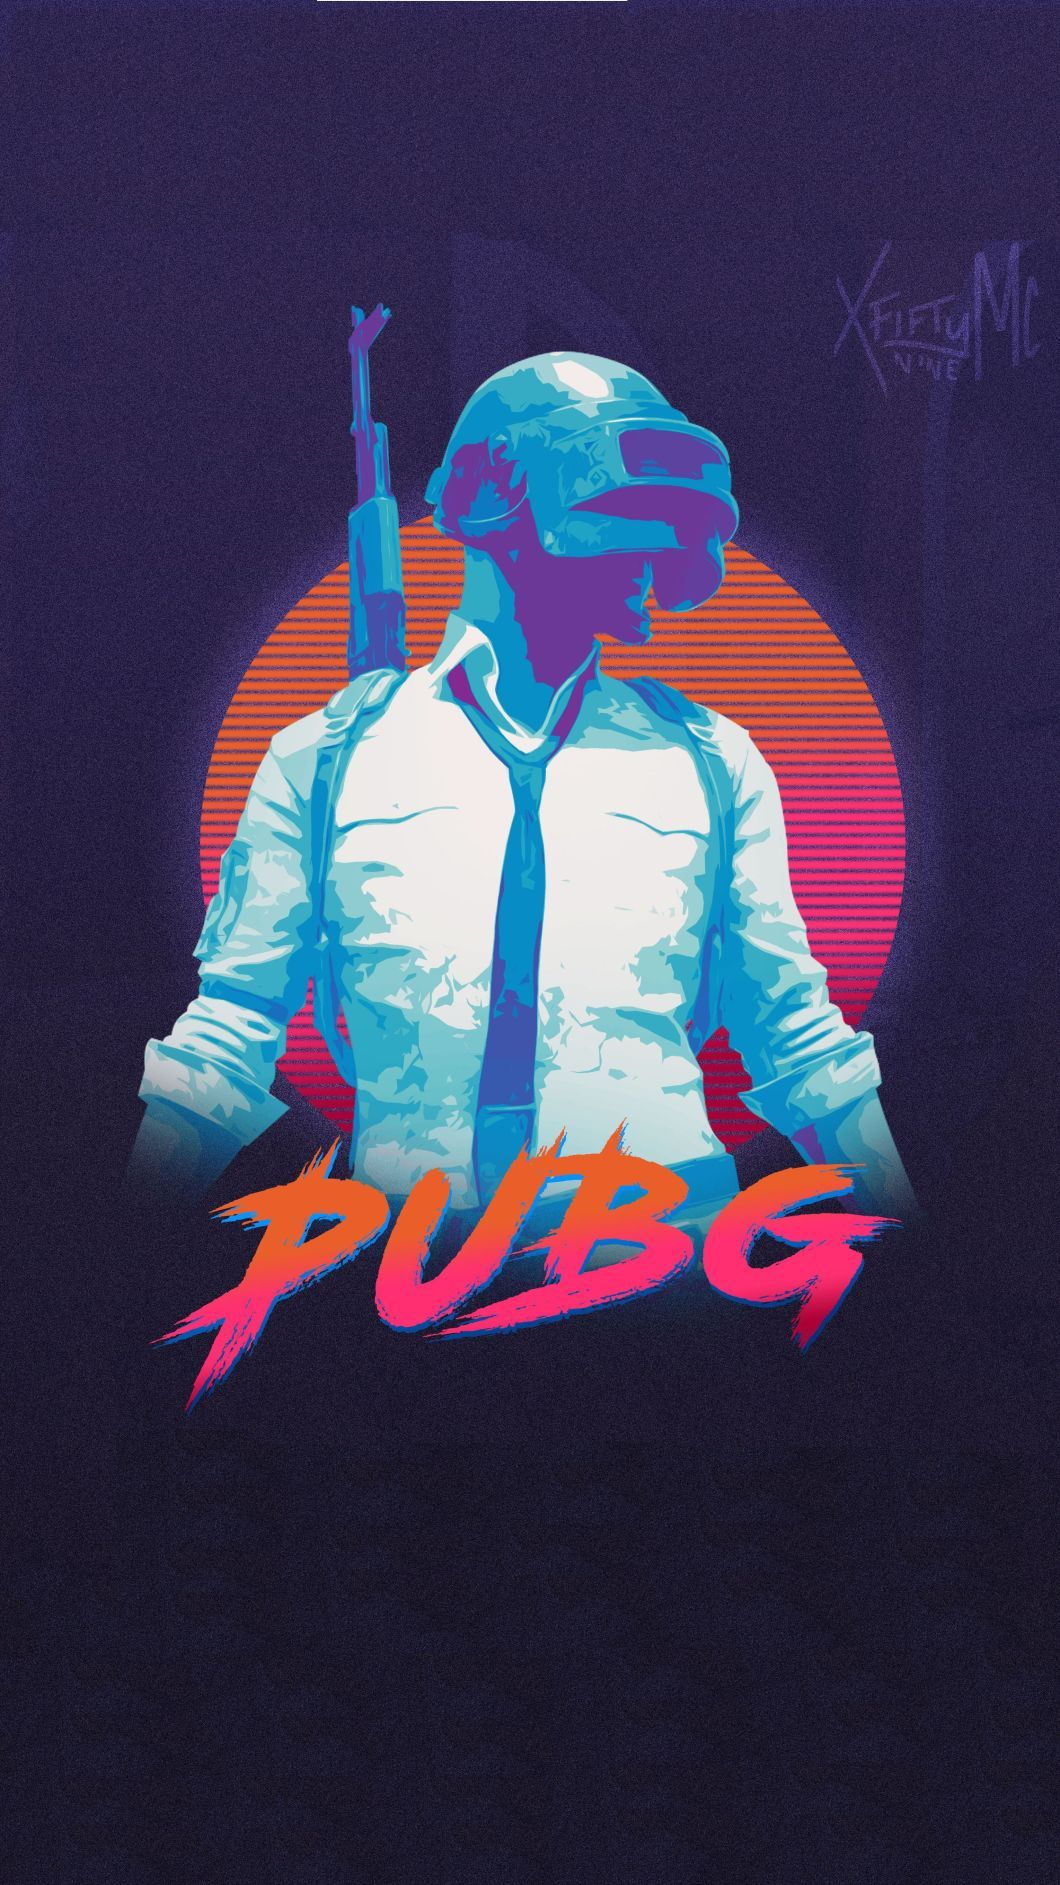 PUBG Mobile Wallpapers - Top Free PUBG Mobile Backgrounds